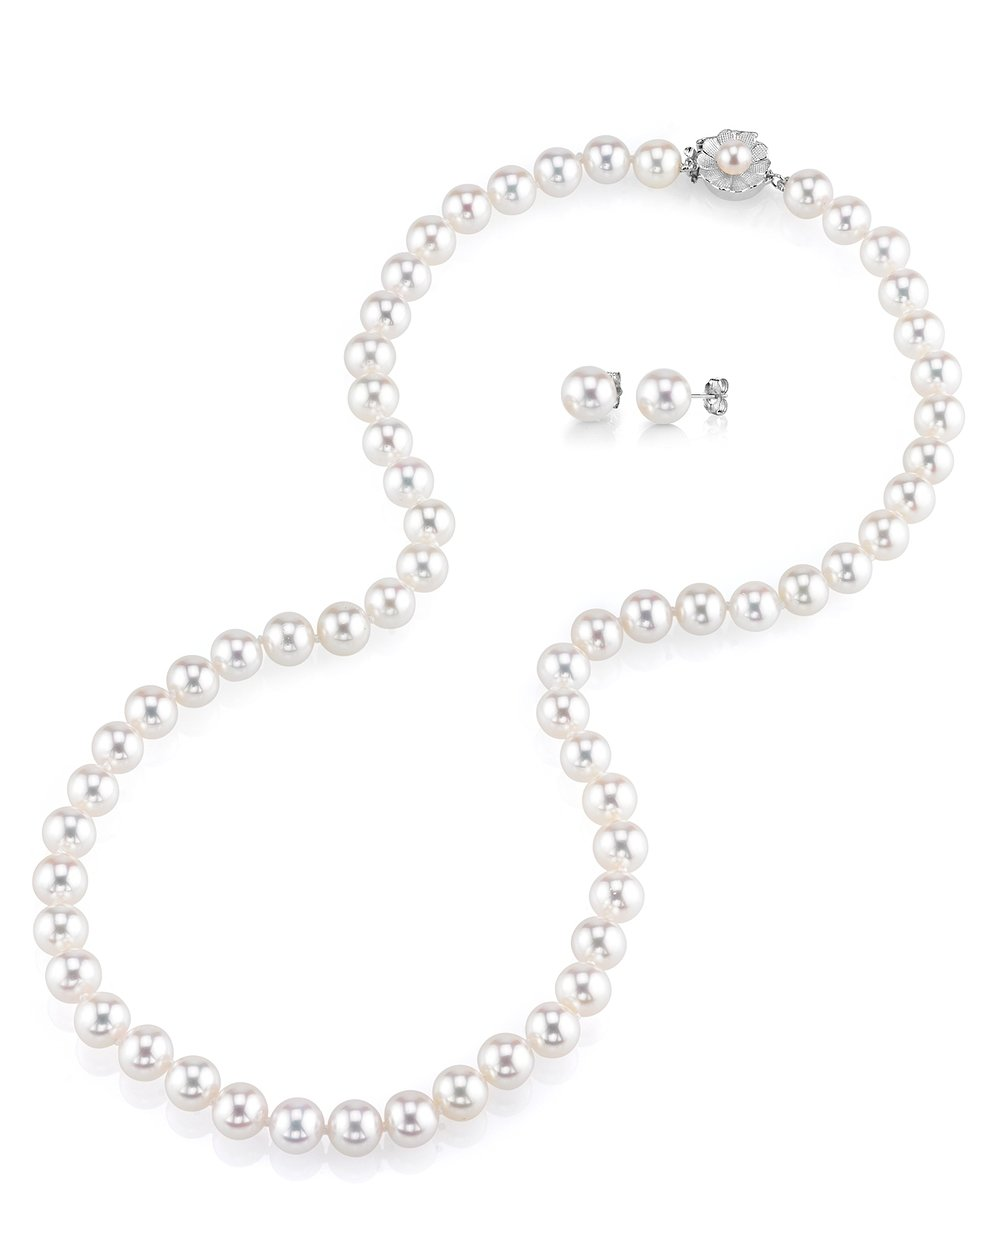 THE PEARL SOURCE AAAA Quality 7-8mm Round White Freshwater Cultured Pearl Necklace & Earrings Set with 14K White Gold Flower Clasp for Women